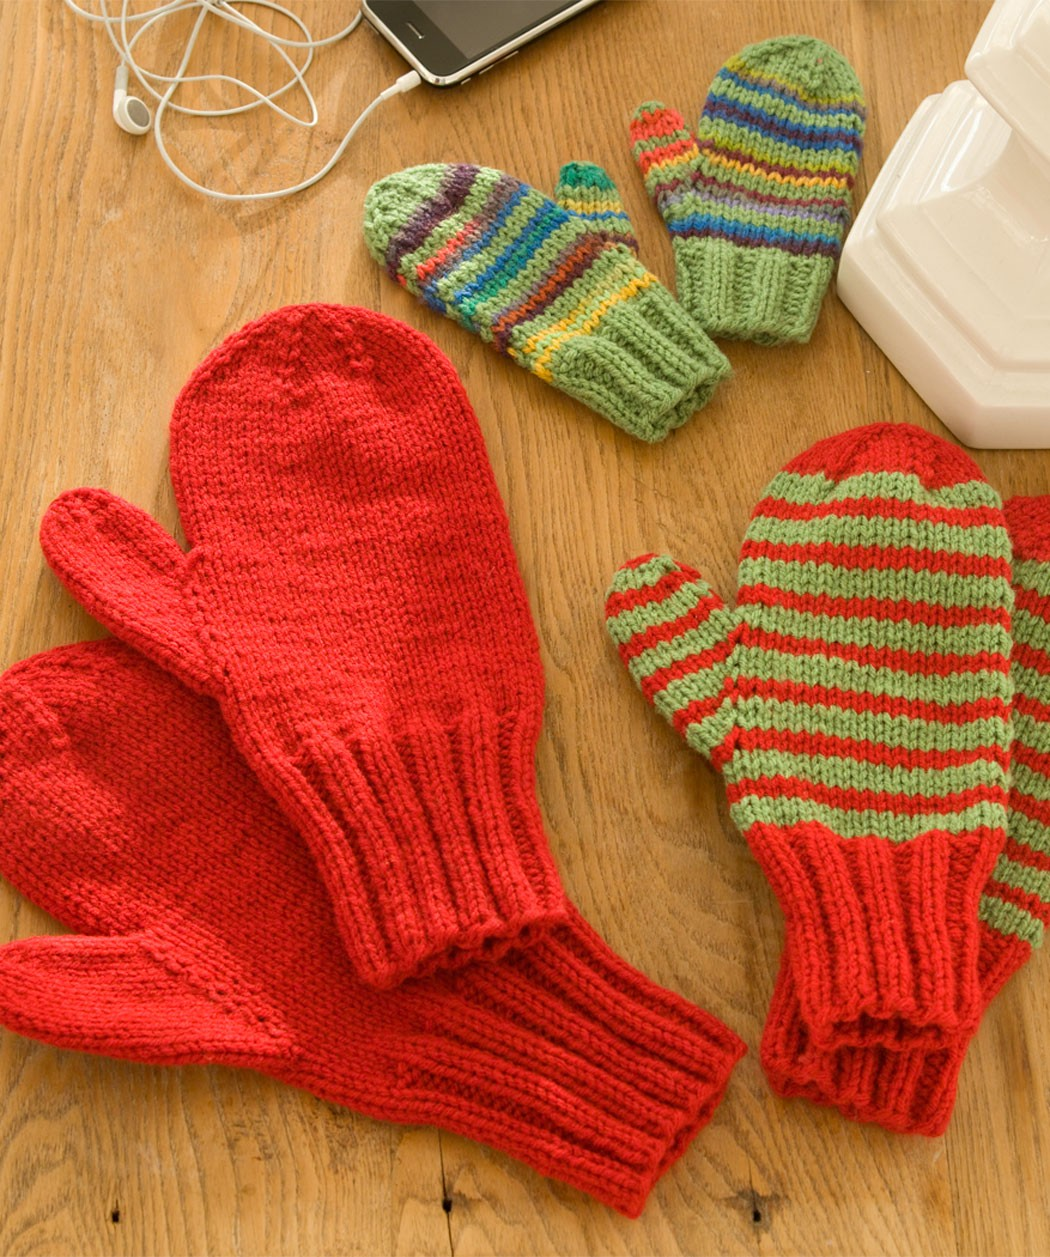 Free Mitten Pattern To Knit myideasbedroom.com